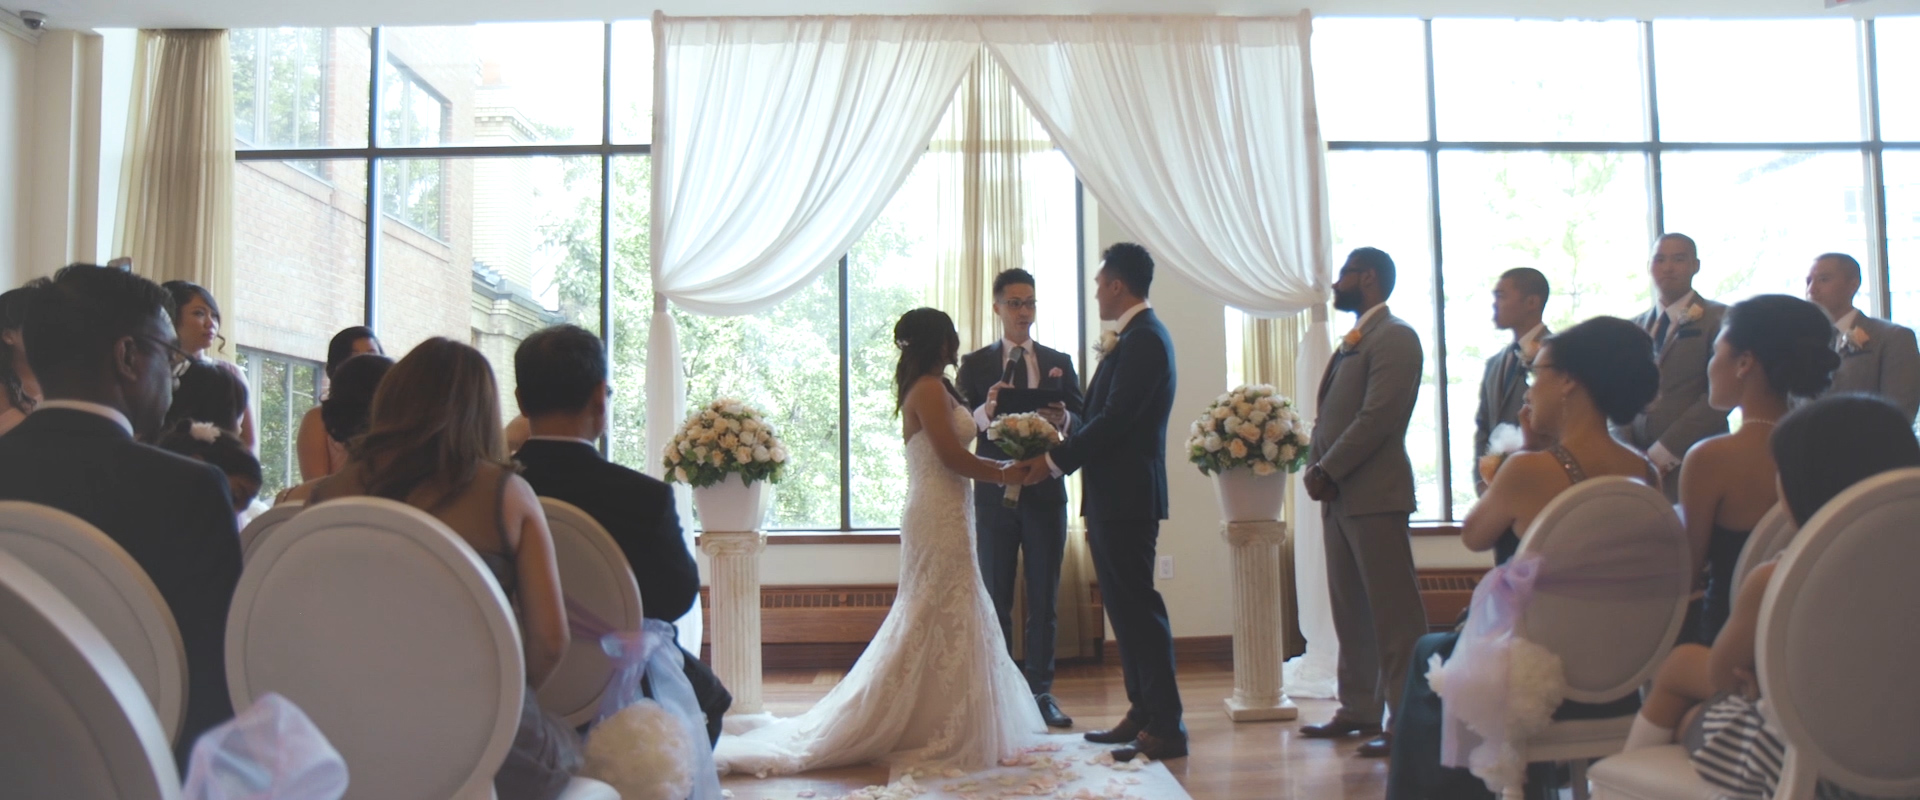 An image of a bride and groom at their wedding ceremony; taken from a Toronto Wedding Video